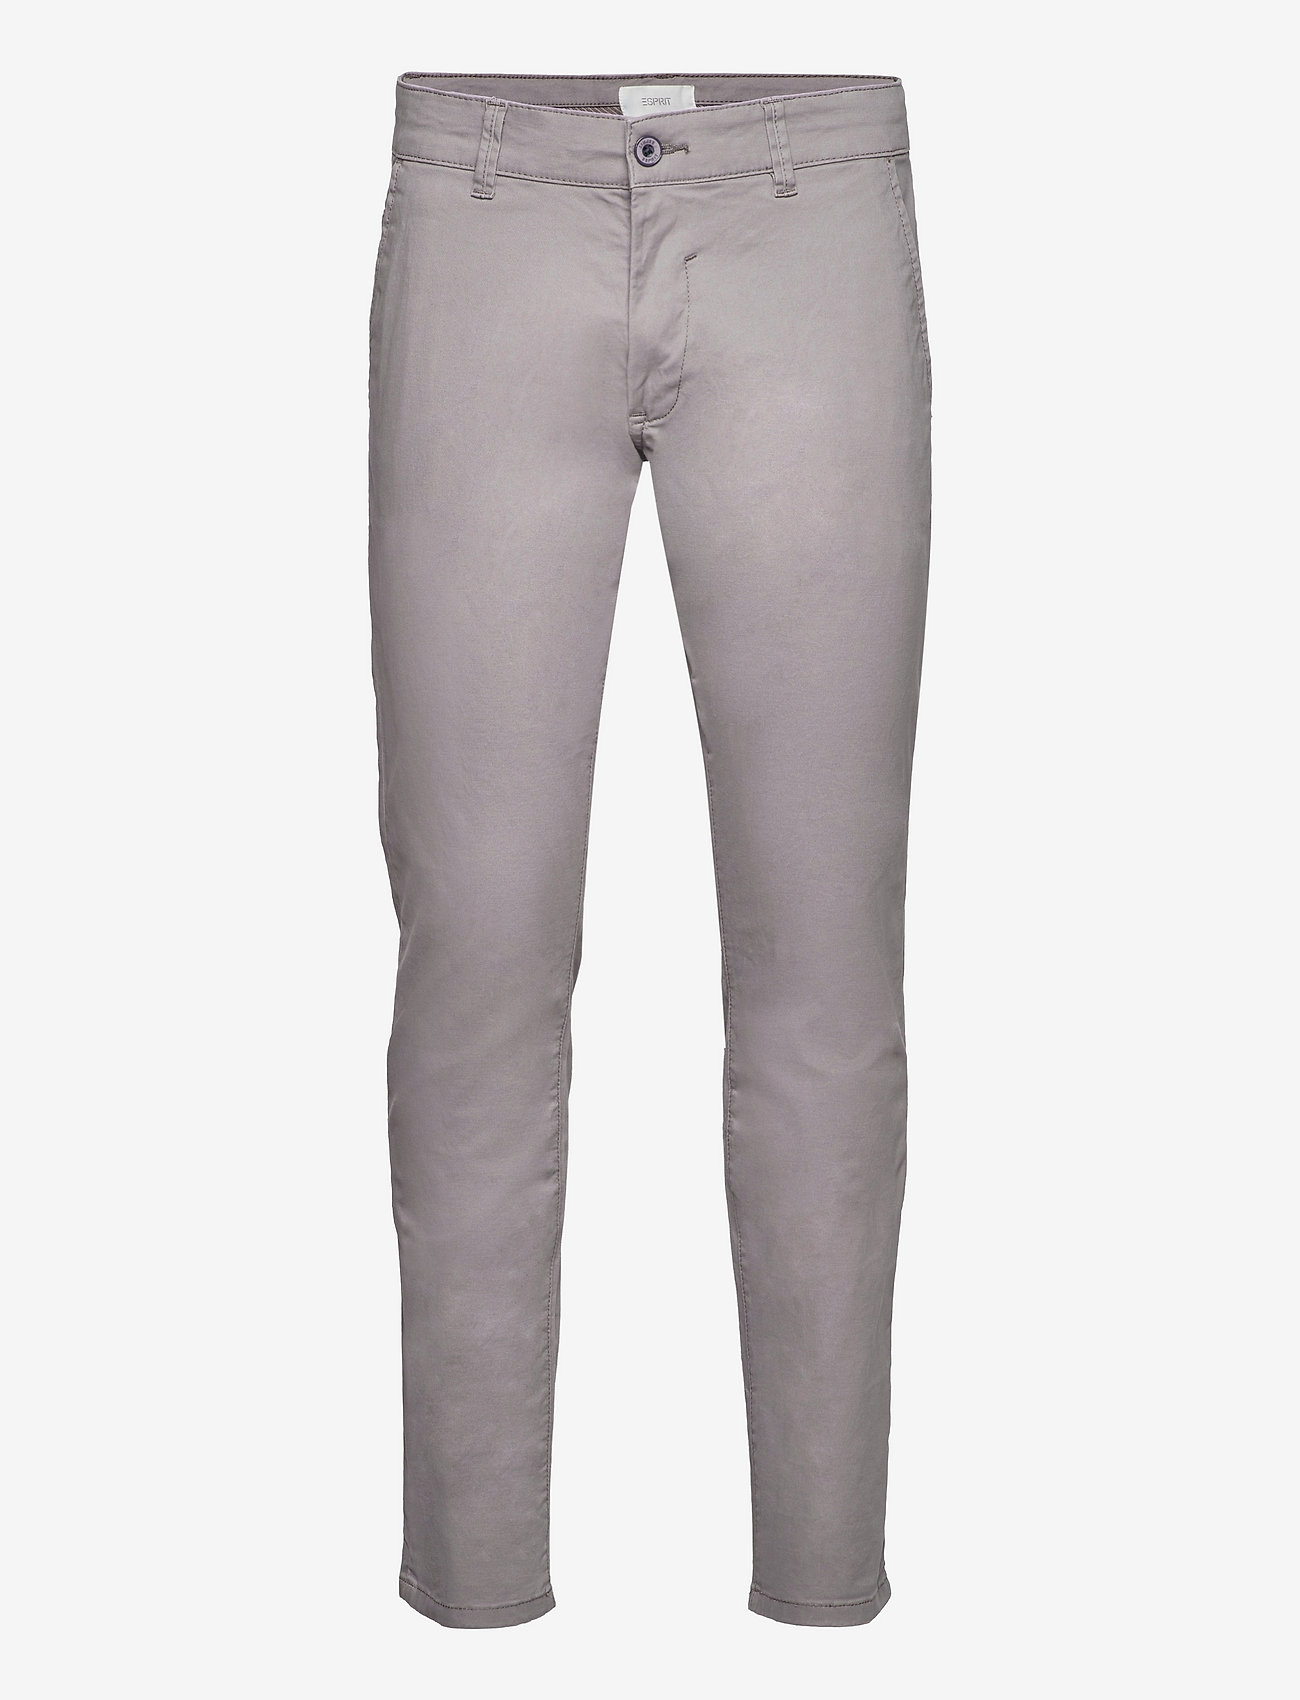 Esprit Casual - Pants woven - chinos - grey - 0